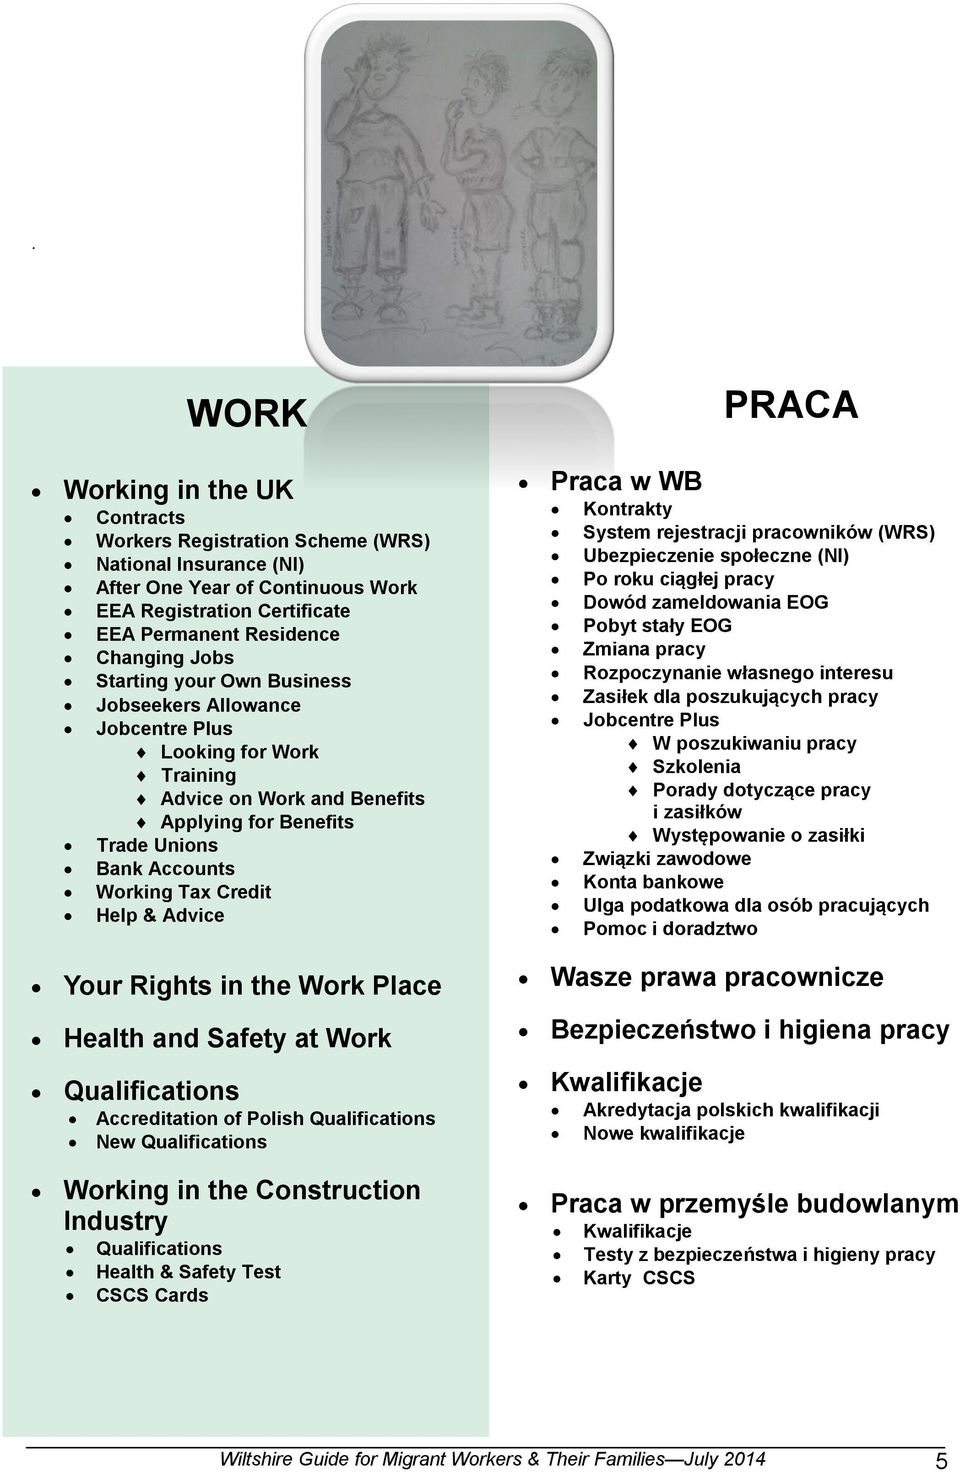 Your Rights in the Work Place Health and Safety at Work Qualifications Accreditation of Polish Qualifications New Qualifications Working in the Construction Industry Qualifications Health & Safety